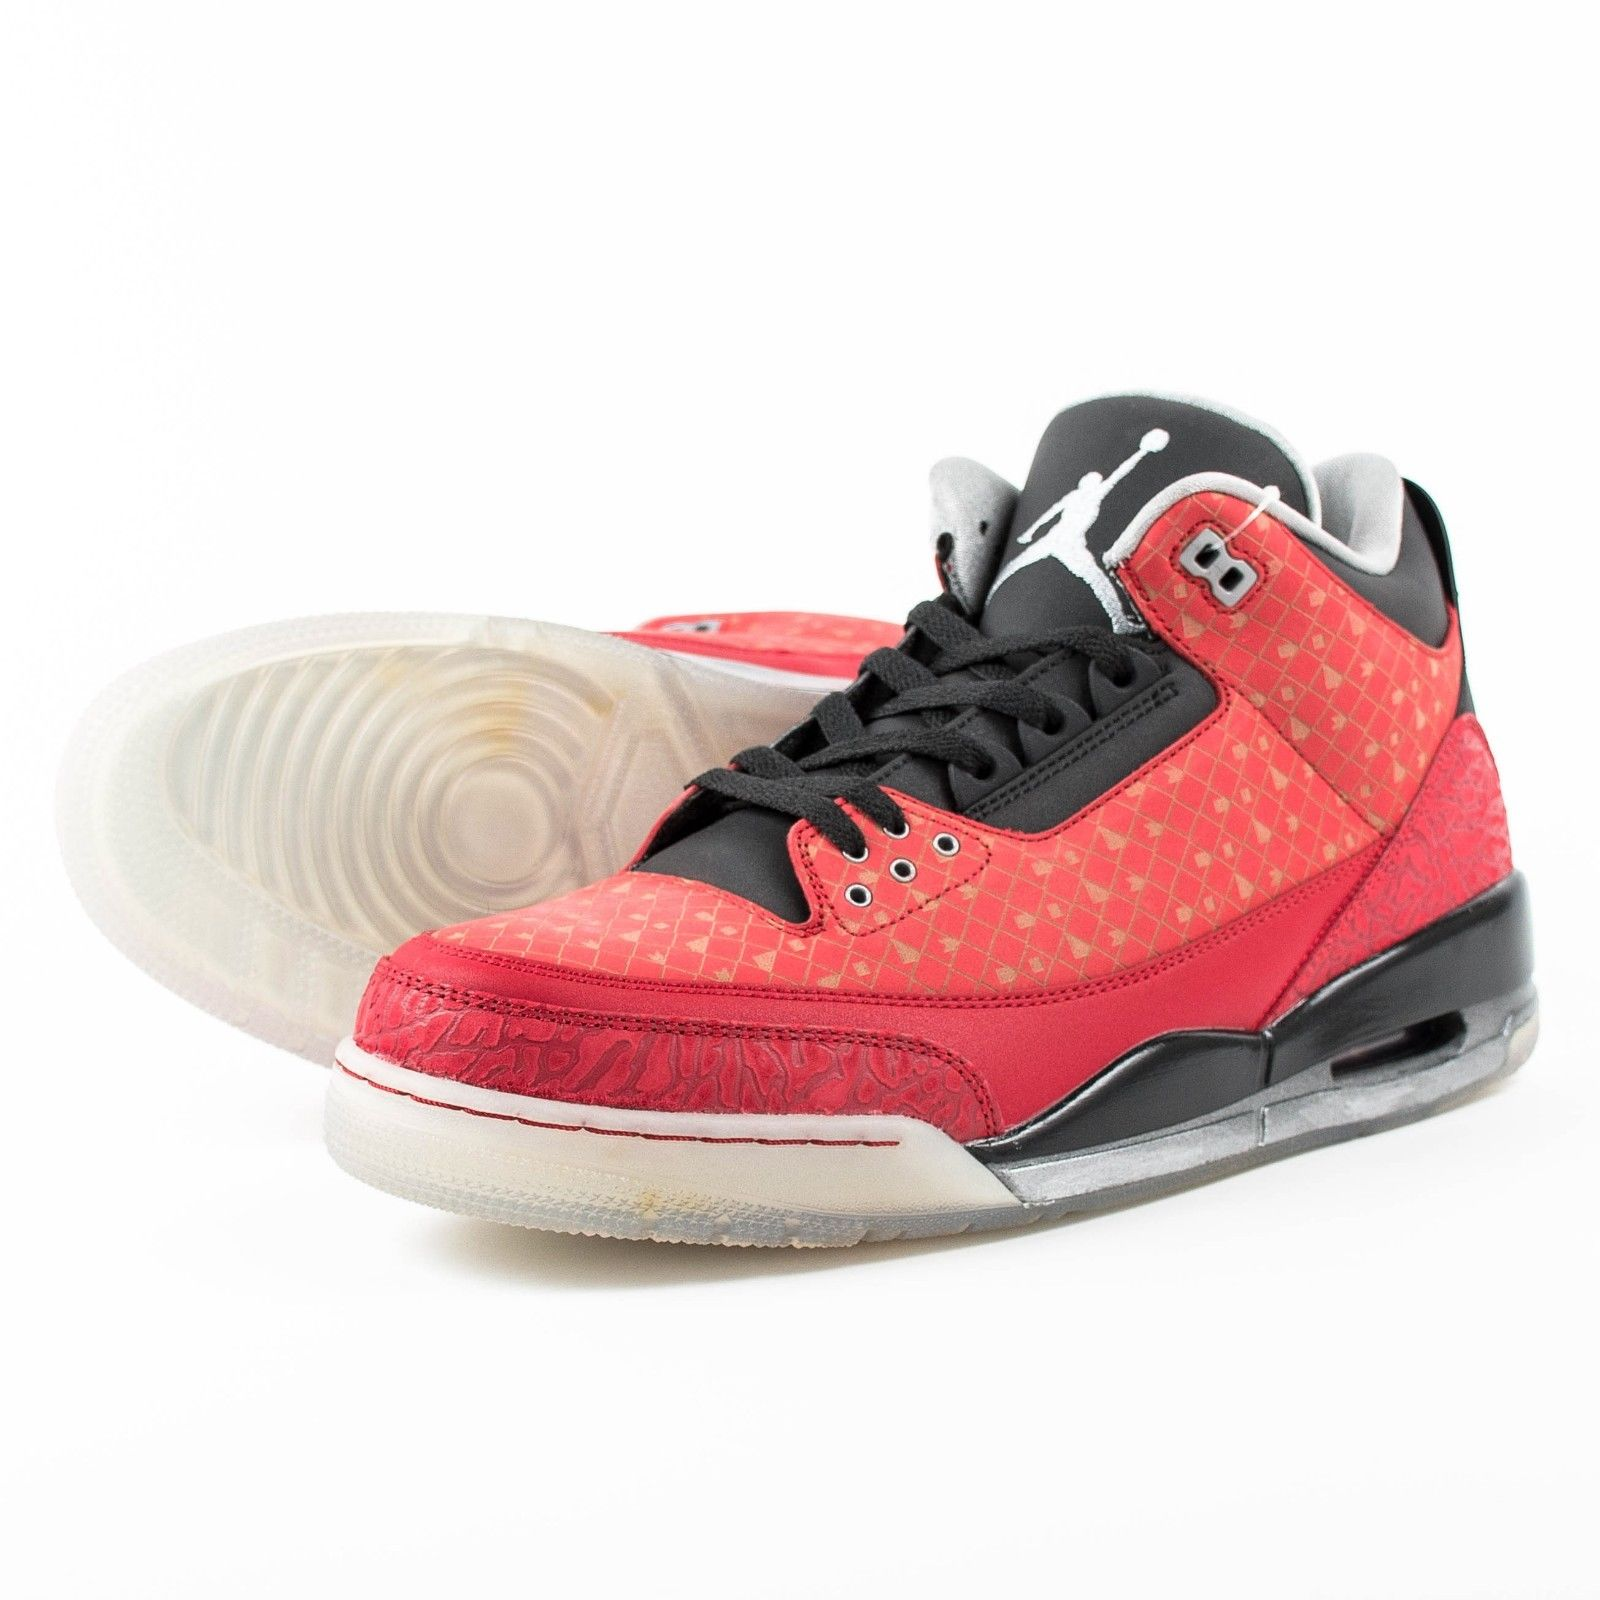 sports shoes ab223 f7523 ... usa release date 5a694 4f103 nike air jordan 3 retro db doernbecher  2013 varsity red silver